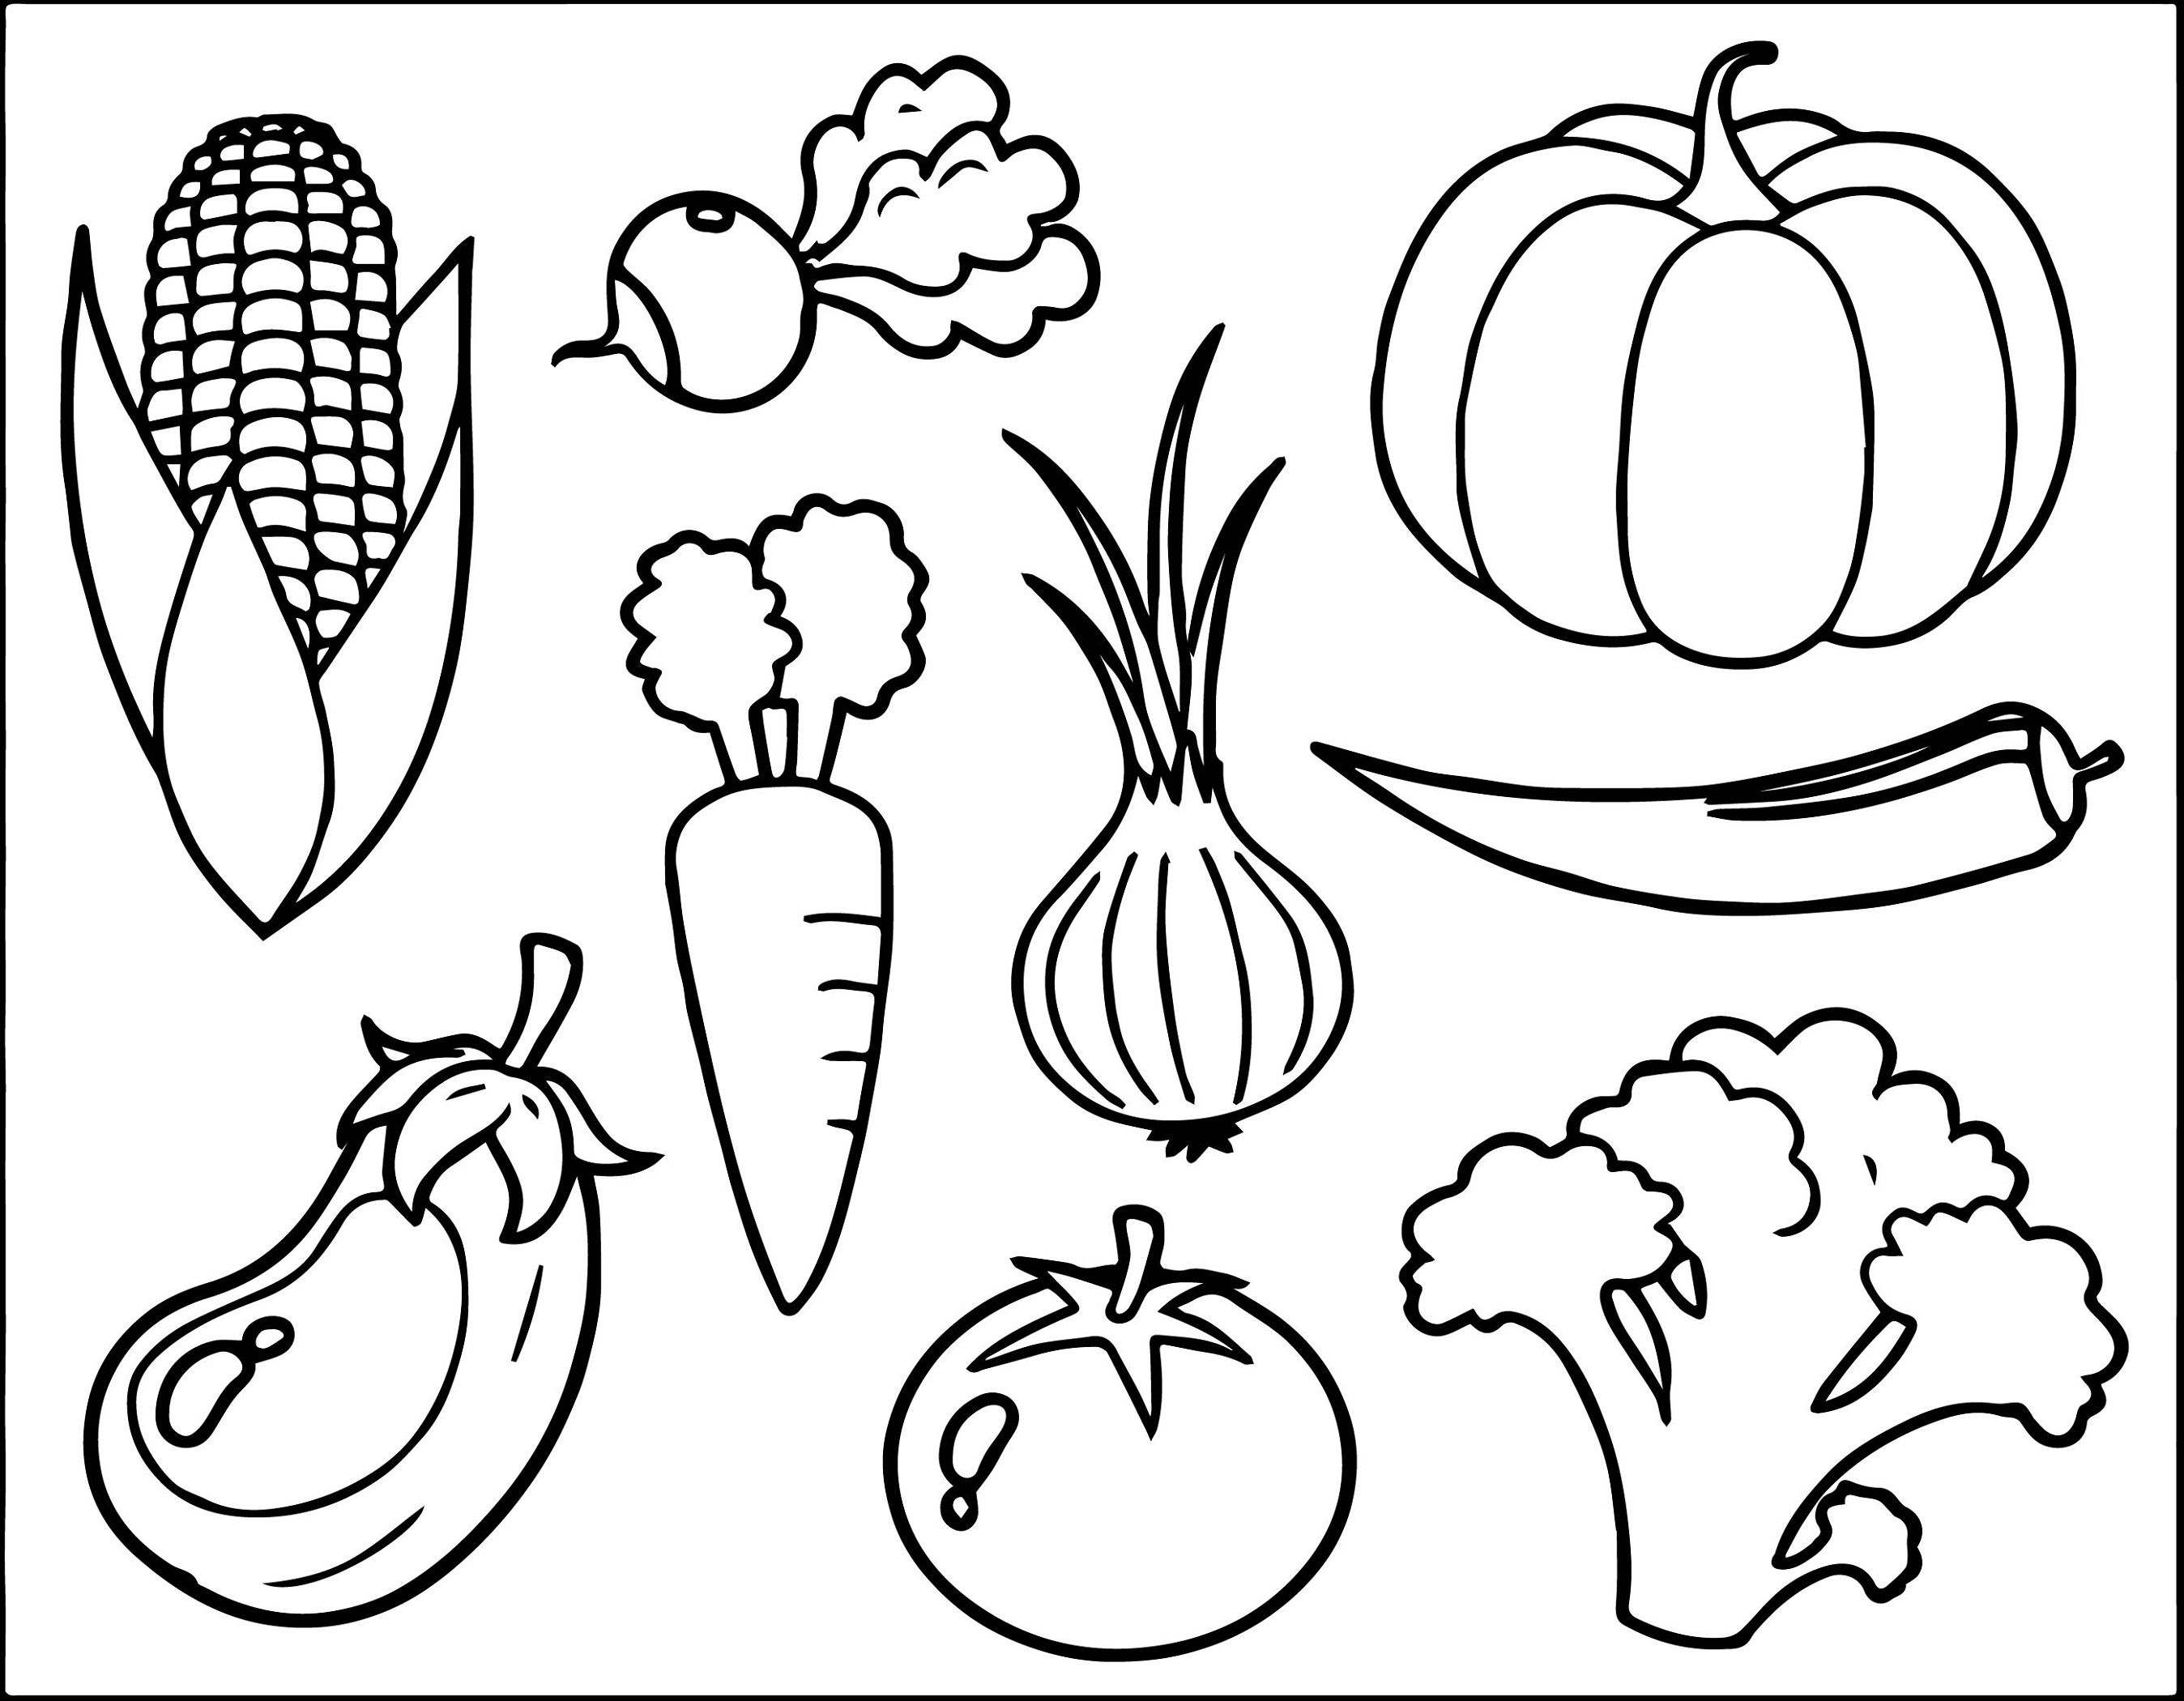 Colouring Pictures for Toddlers Vegetables